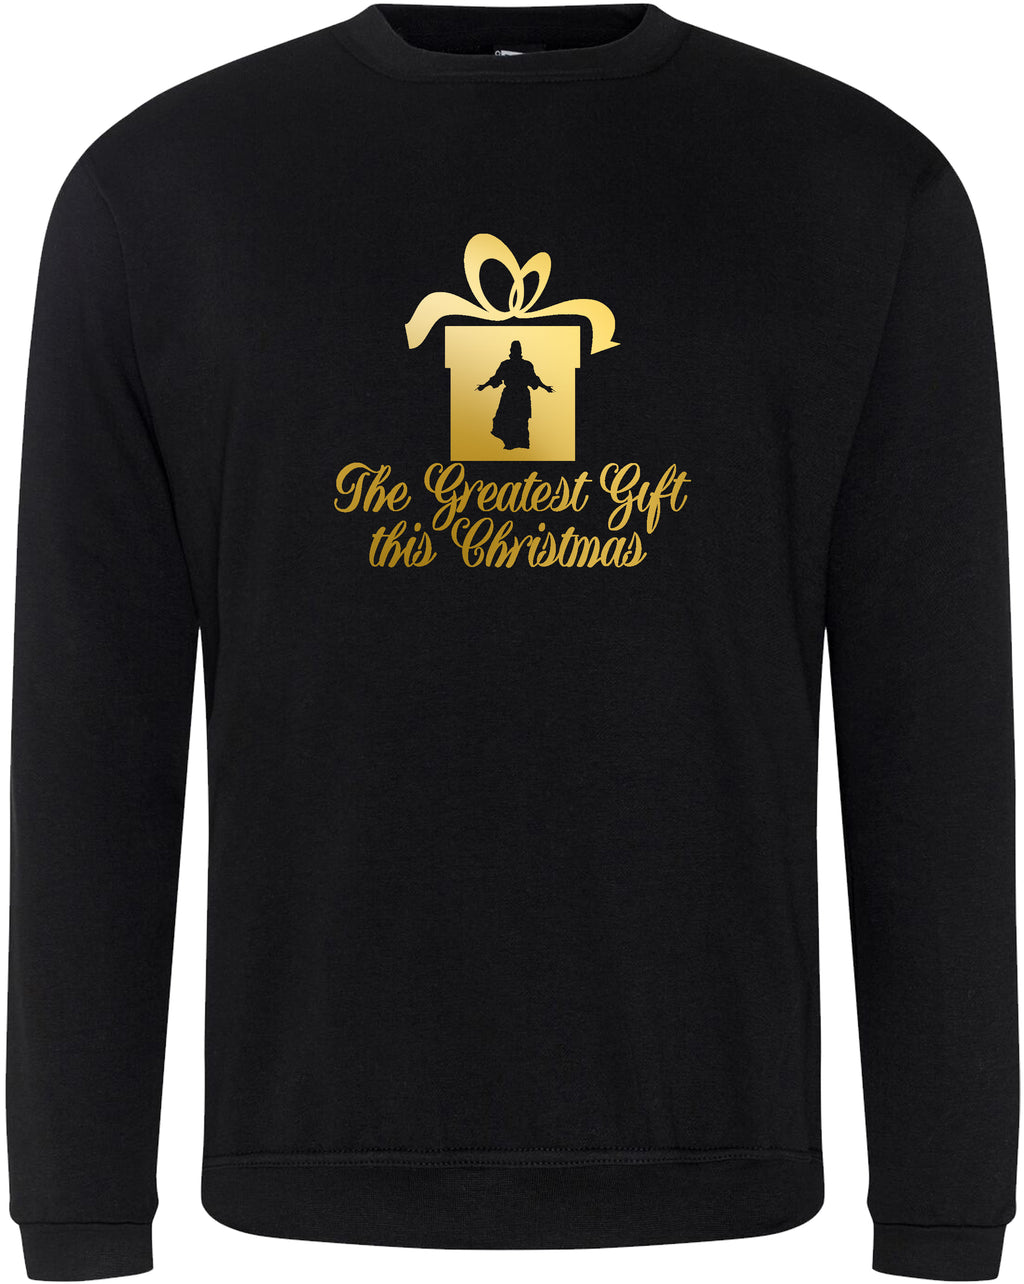 "Unisex ""GREATEST GIFT"" CHARITY CHRISTMAS SWEATSHIRT"